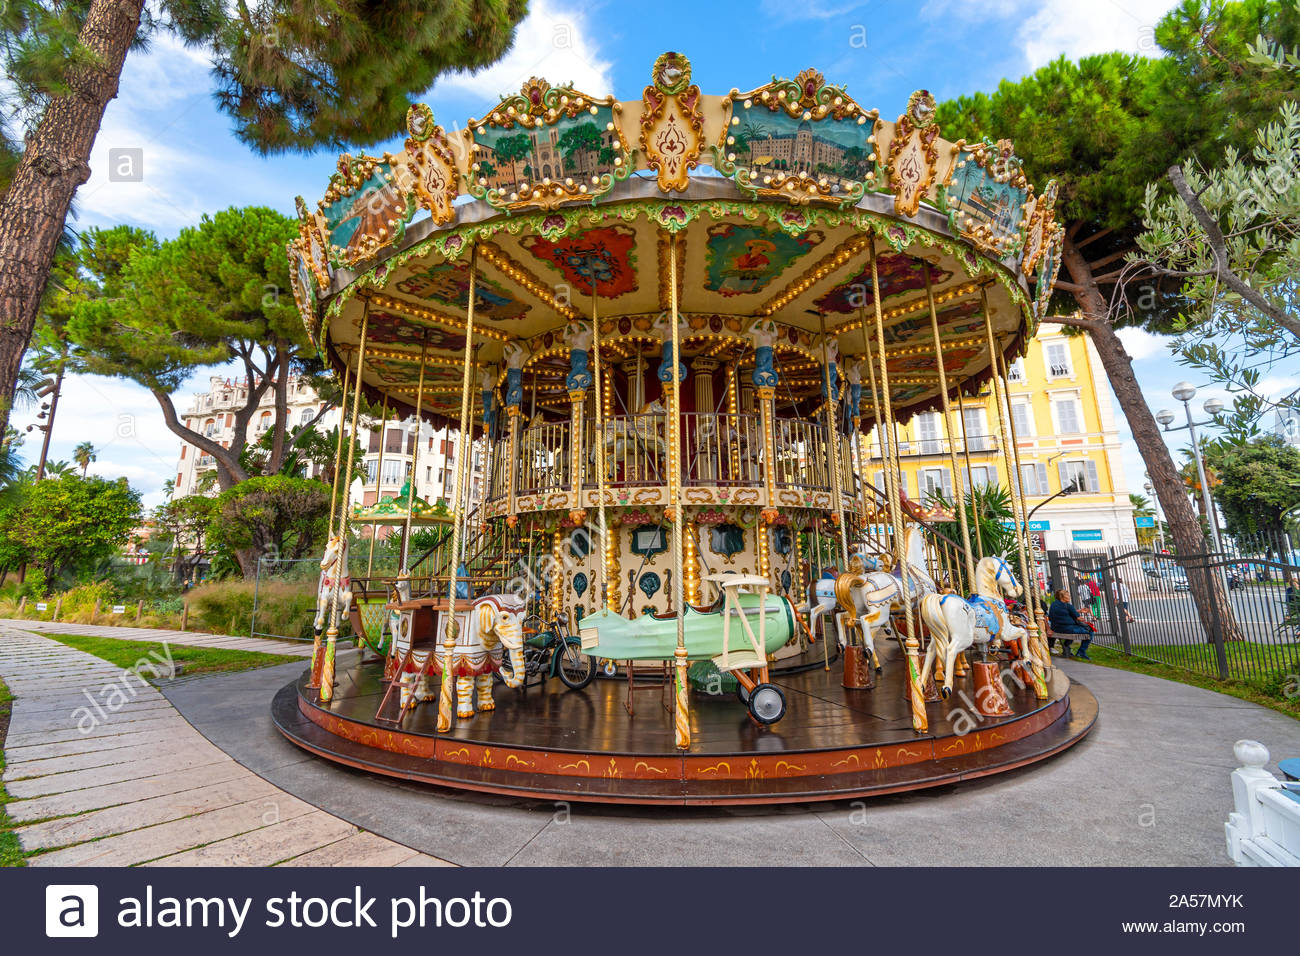 The colorful carousel at Albert I Garden, or Jardin Albert 1er in Vieux or Old City in the Mediterannean city of Nice France on the French Riviera Stock Photo